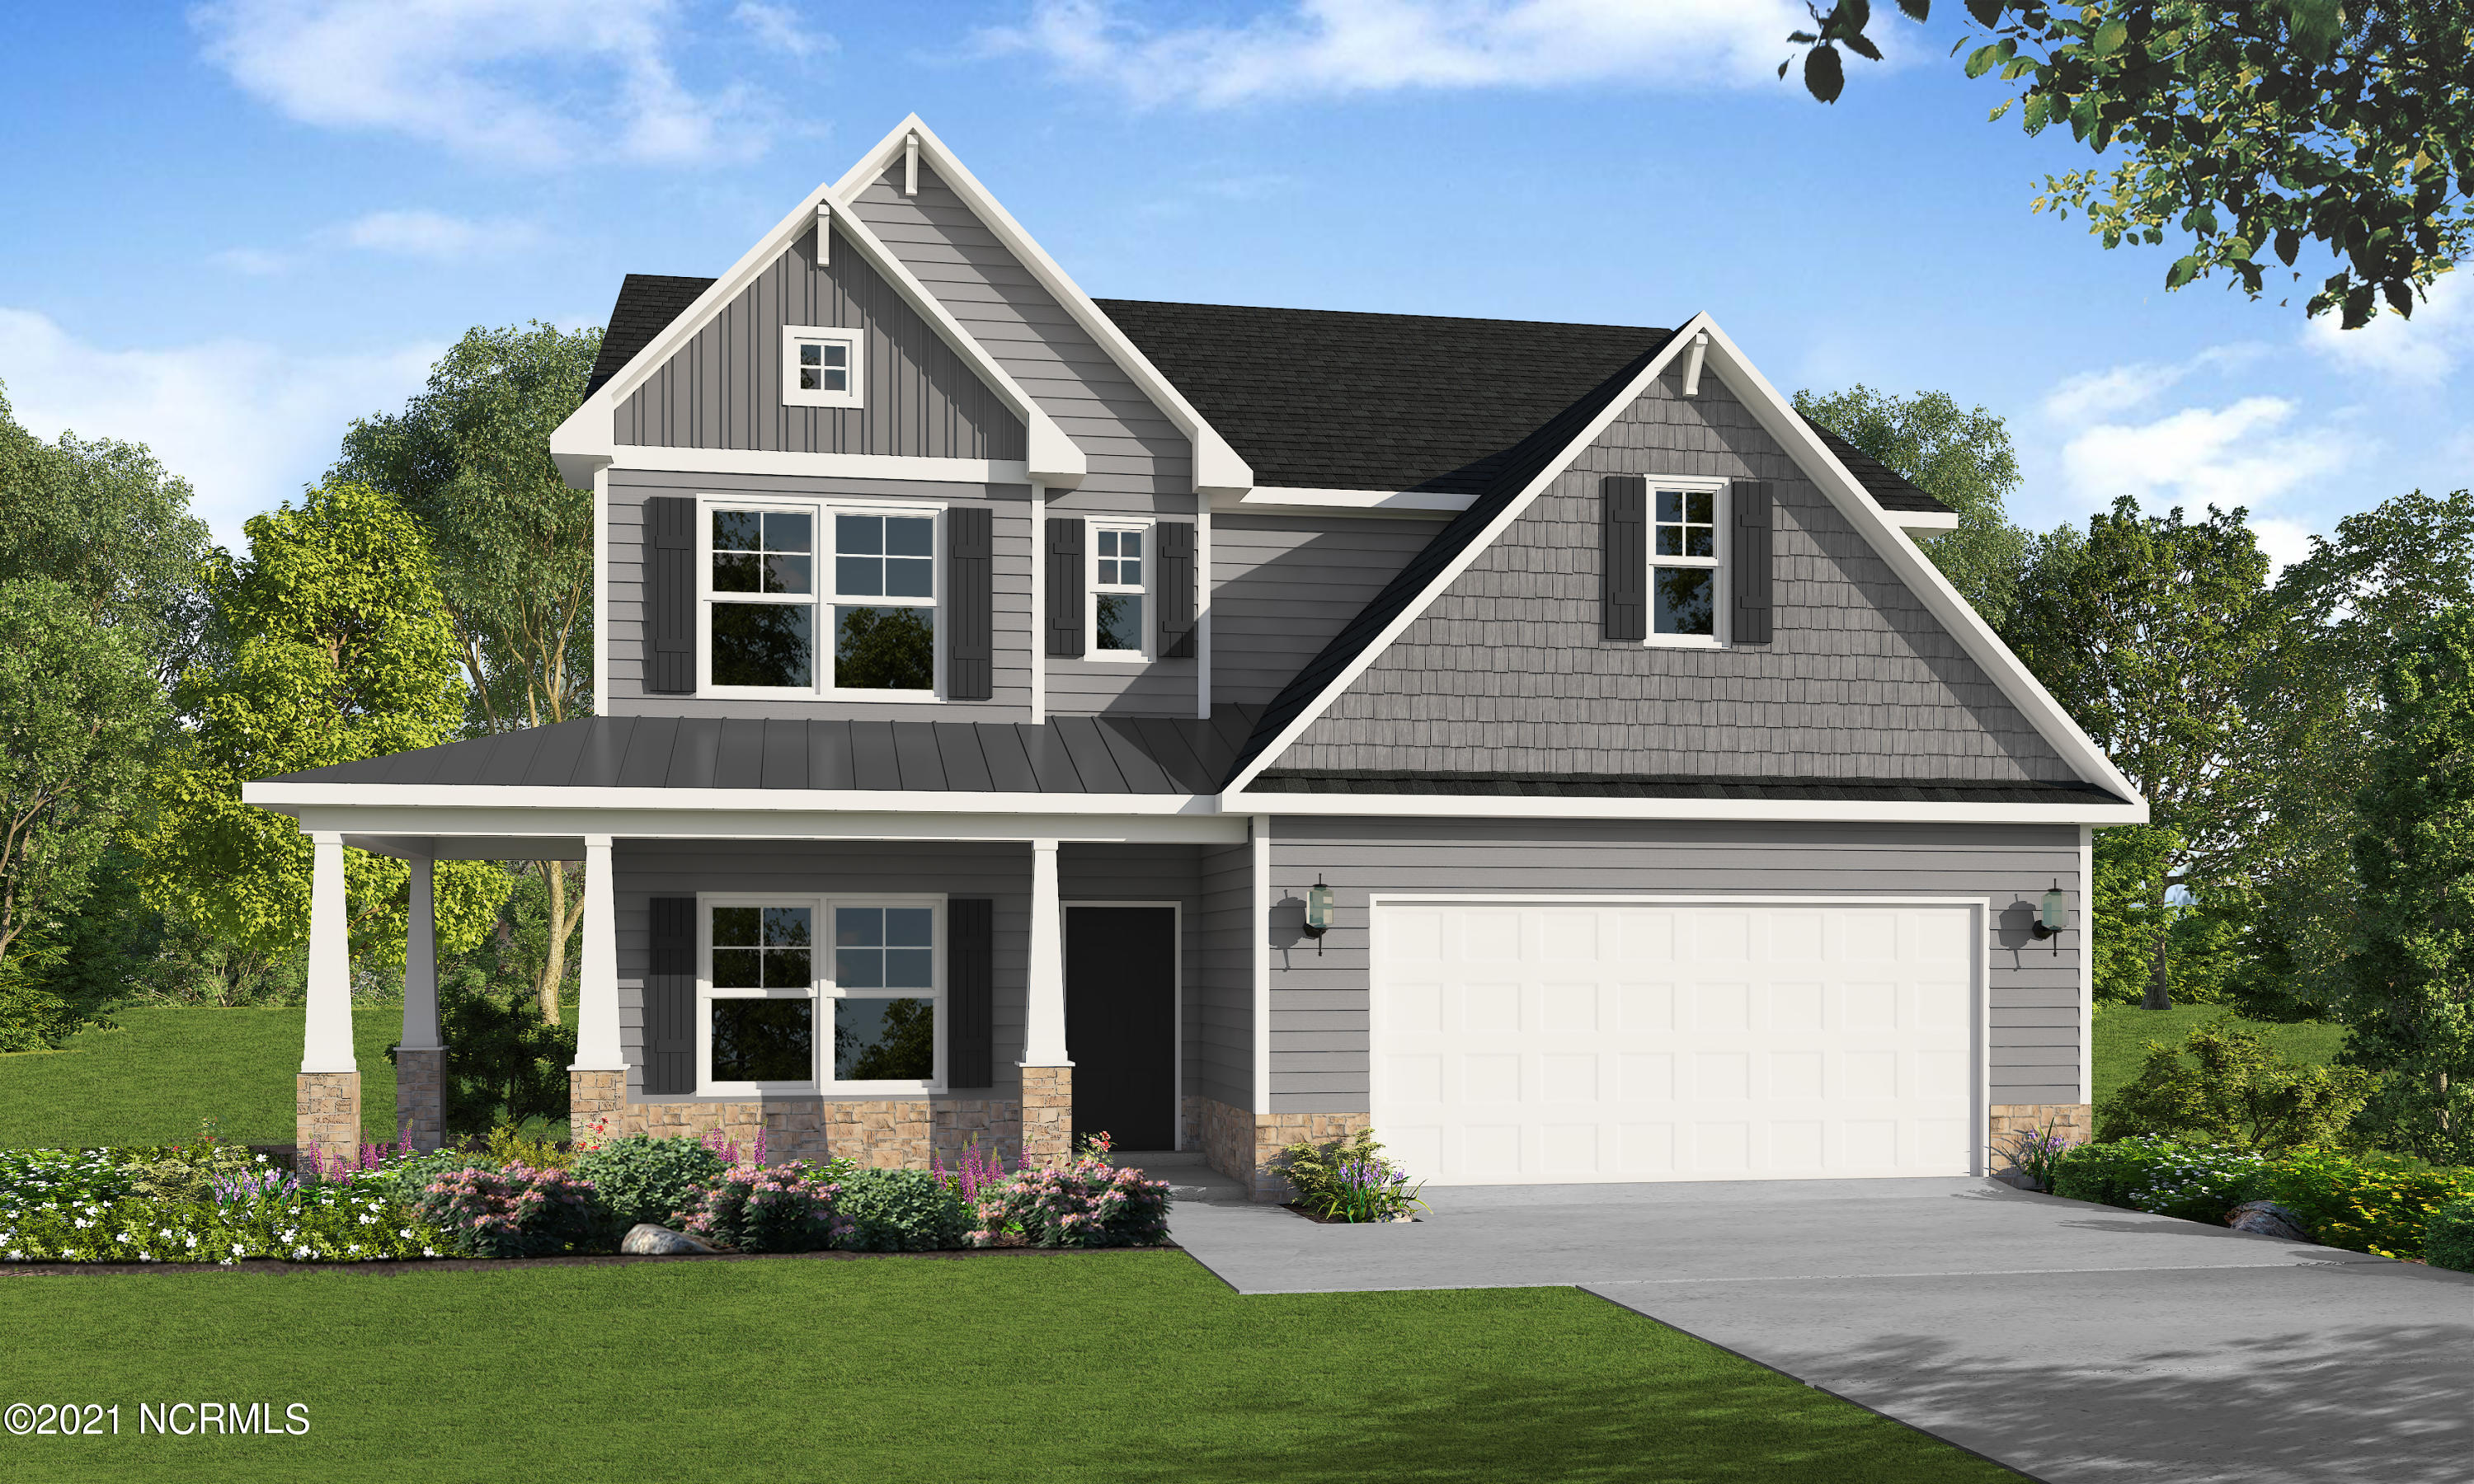 HOME IS UNDER CONSTRUCTION!!! EST COMPLETION DEC 2021. The Rivermist by Caviness & Cates is a beloved favorite by all. It features an open floor plan with a stunning two story Great Room. The first floor master suite has his and her sinks, WICs and a private water closet. The home is complete with a second story loft and three  bedrooms. complete with WICs. This home is for elevation K.